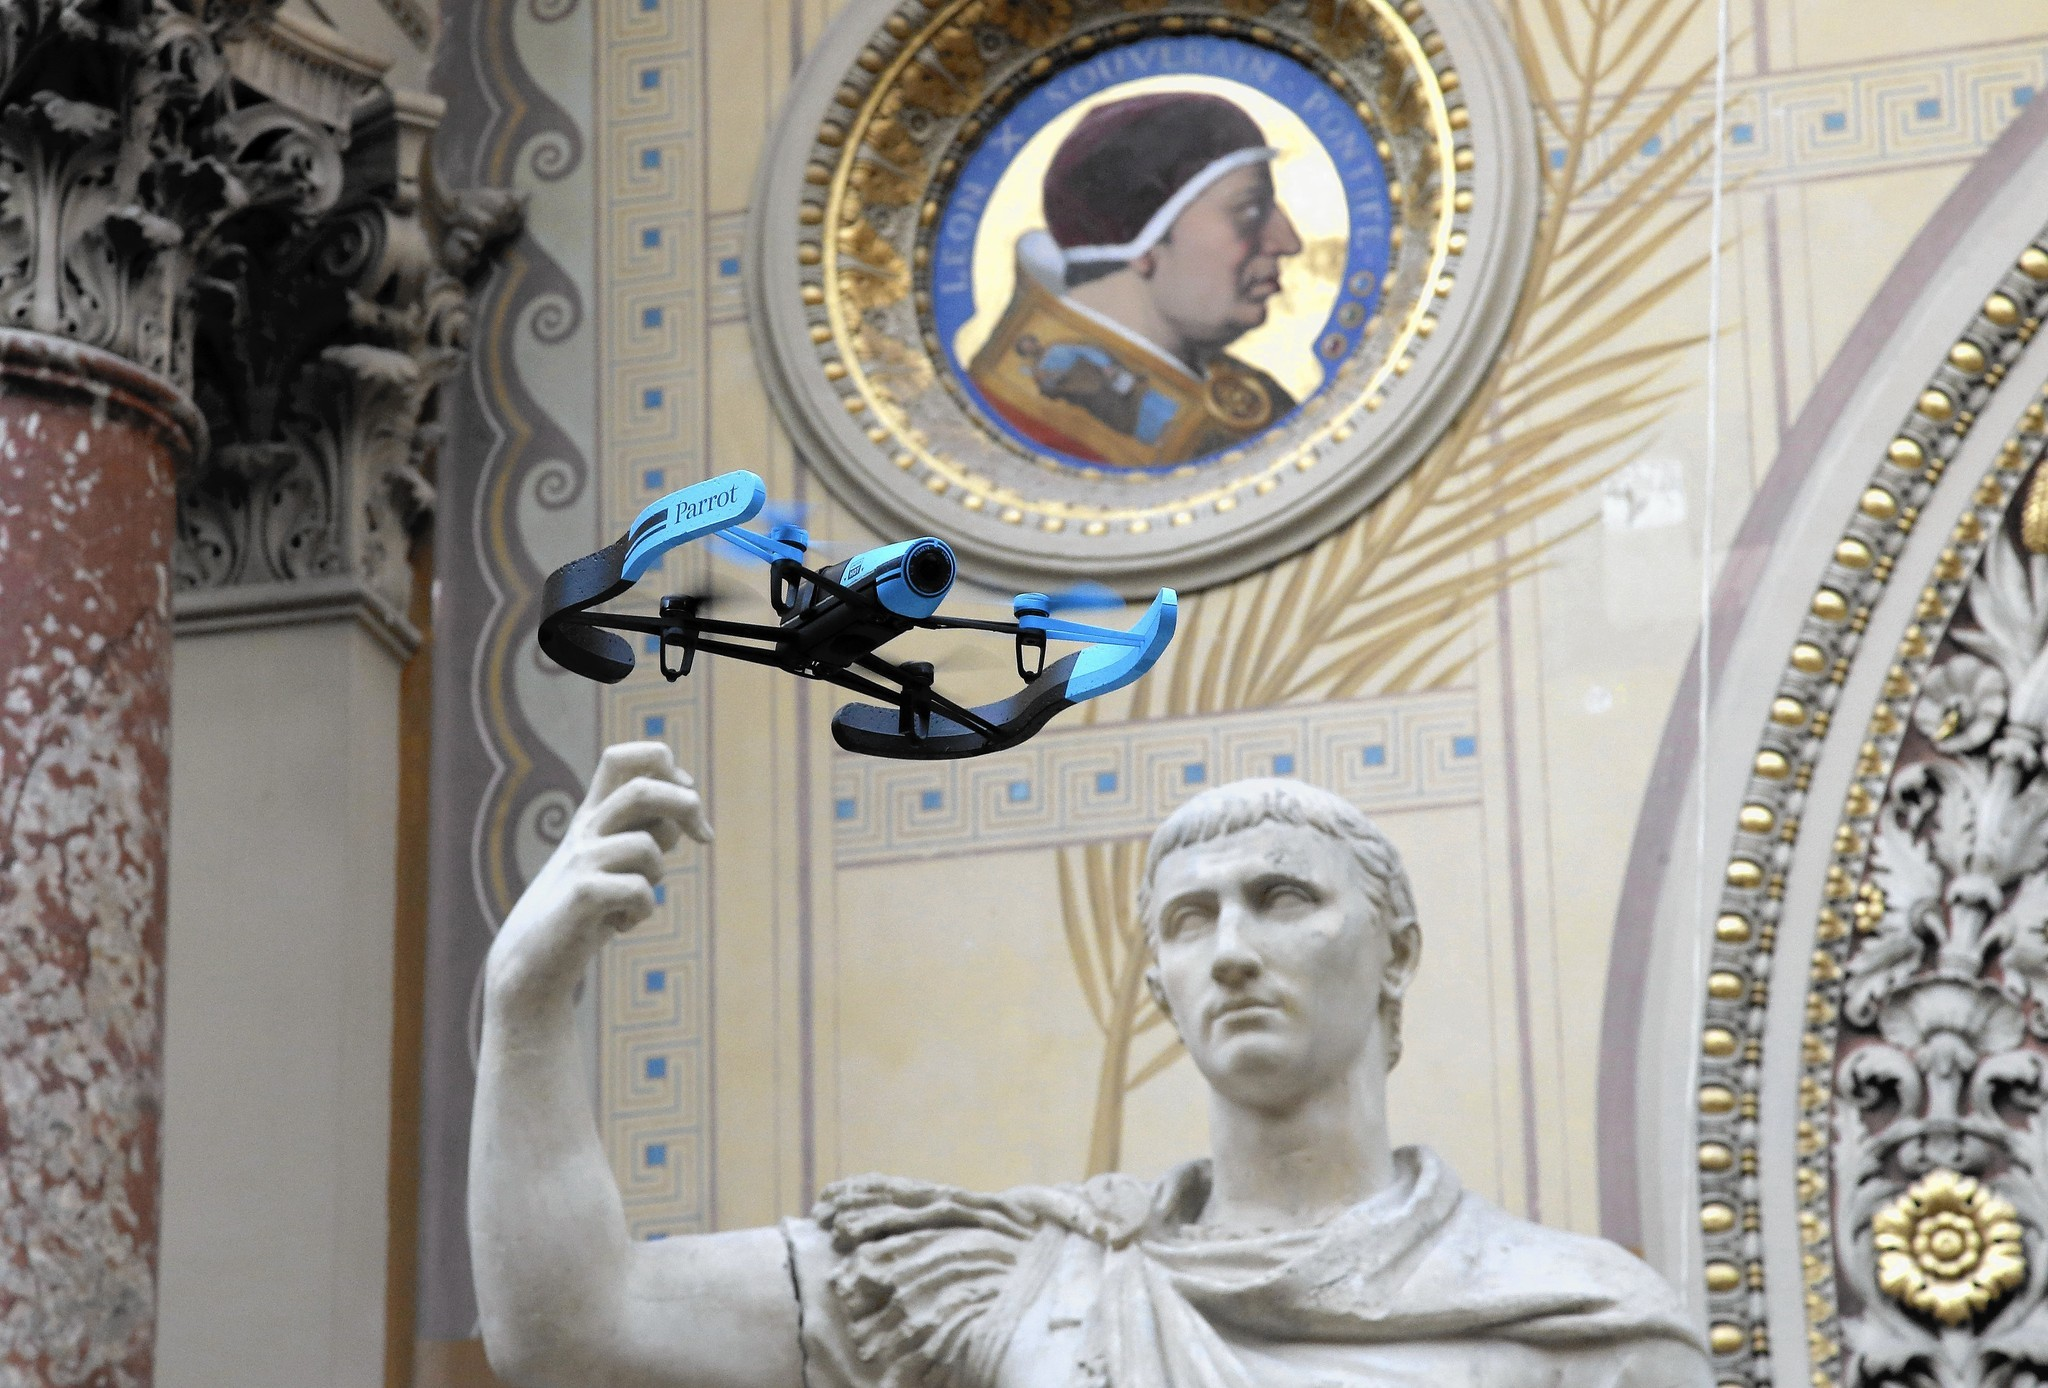 We must ban drones before it's too late